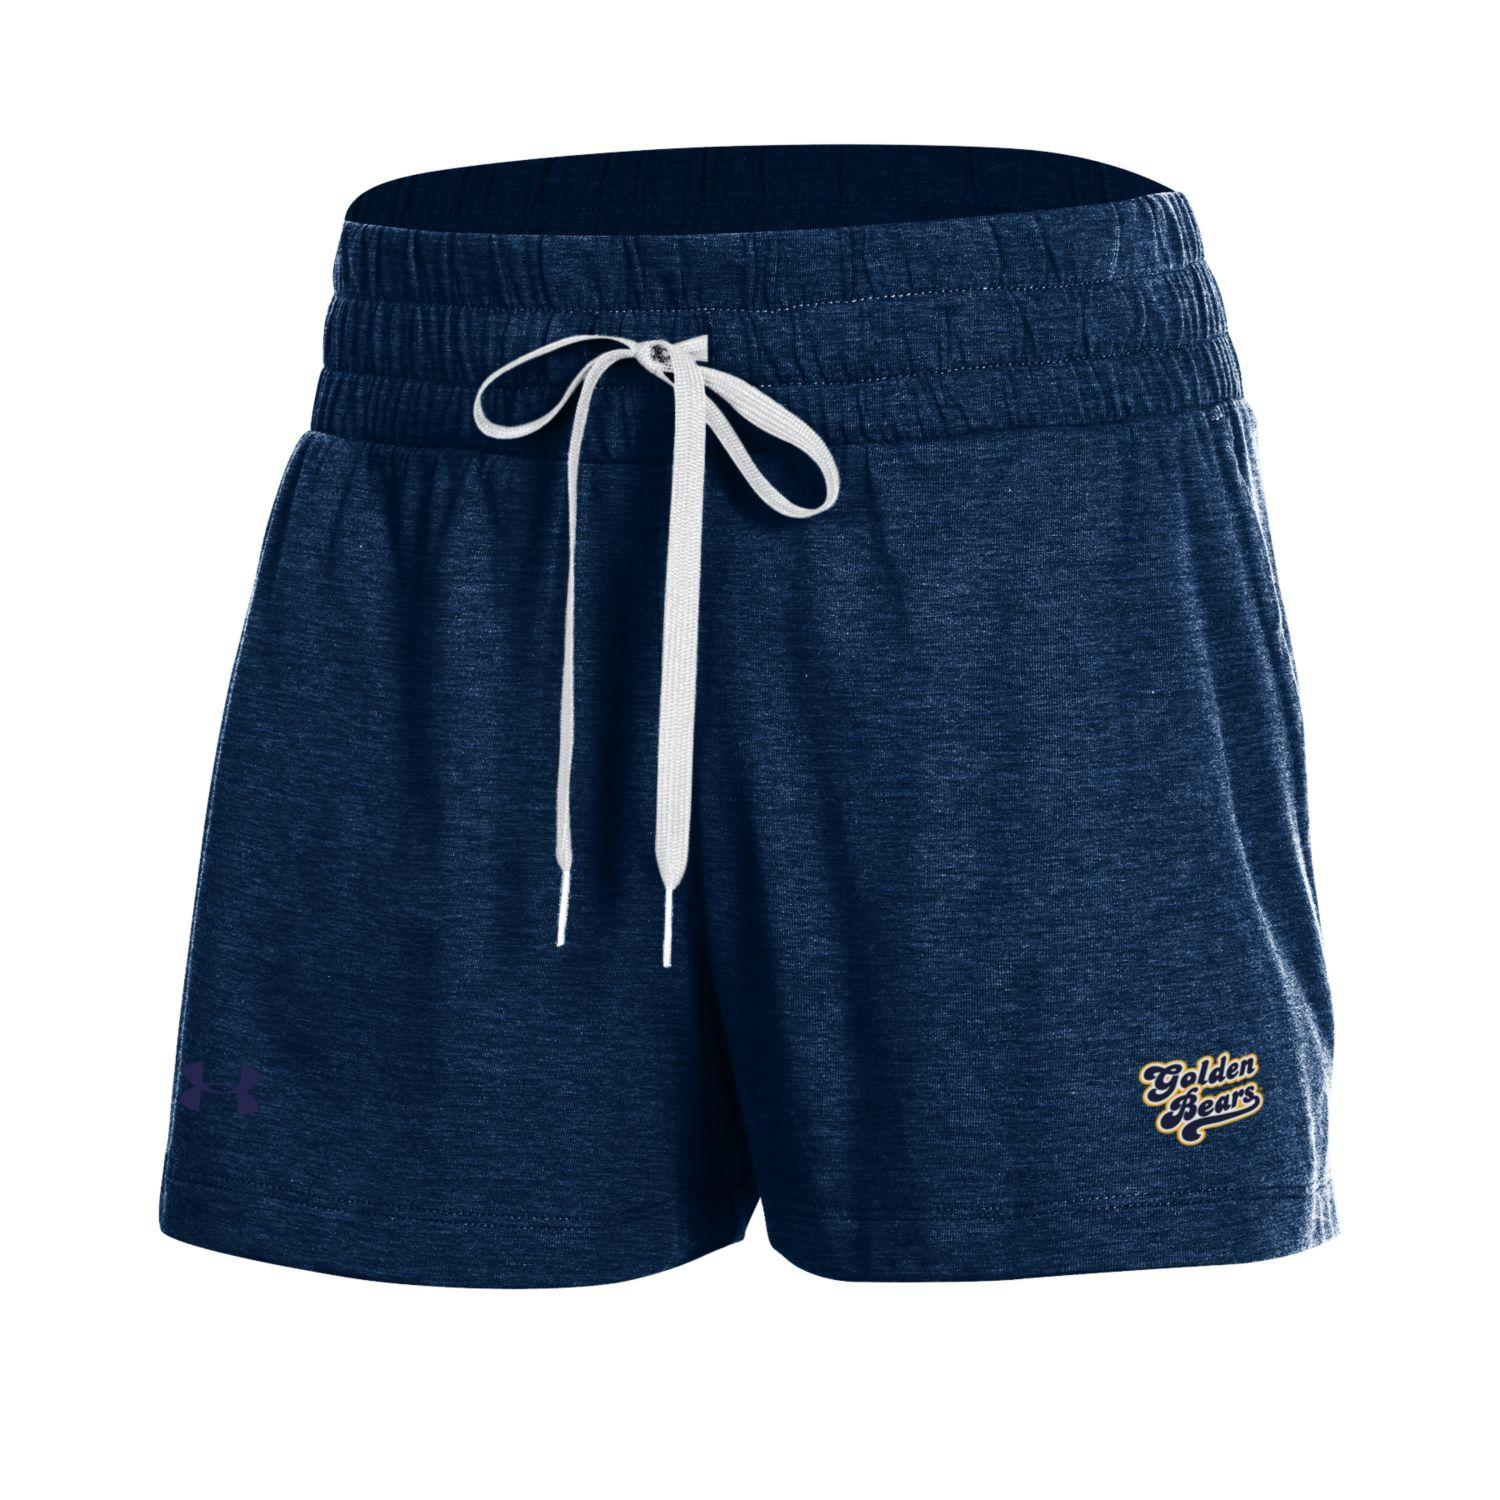 Youth G Performance Cotton Shorts